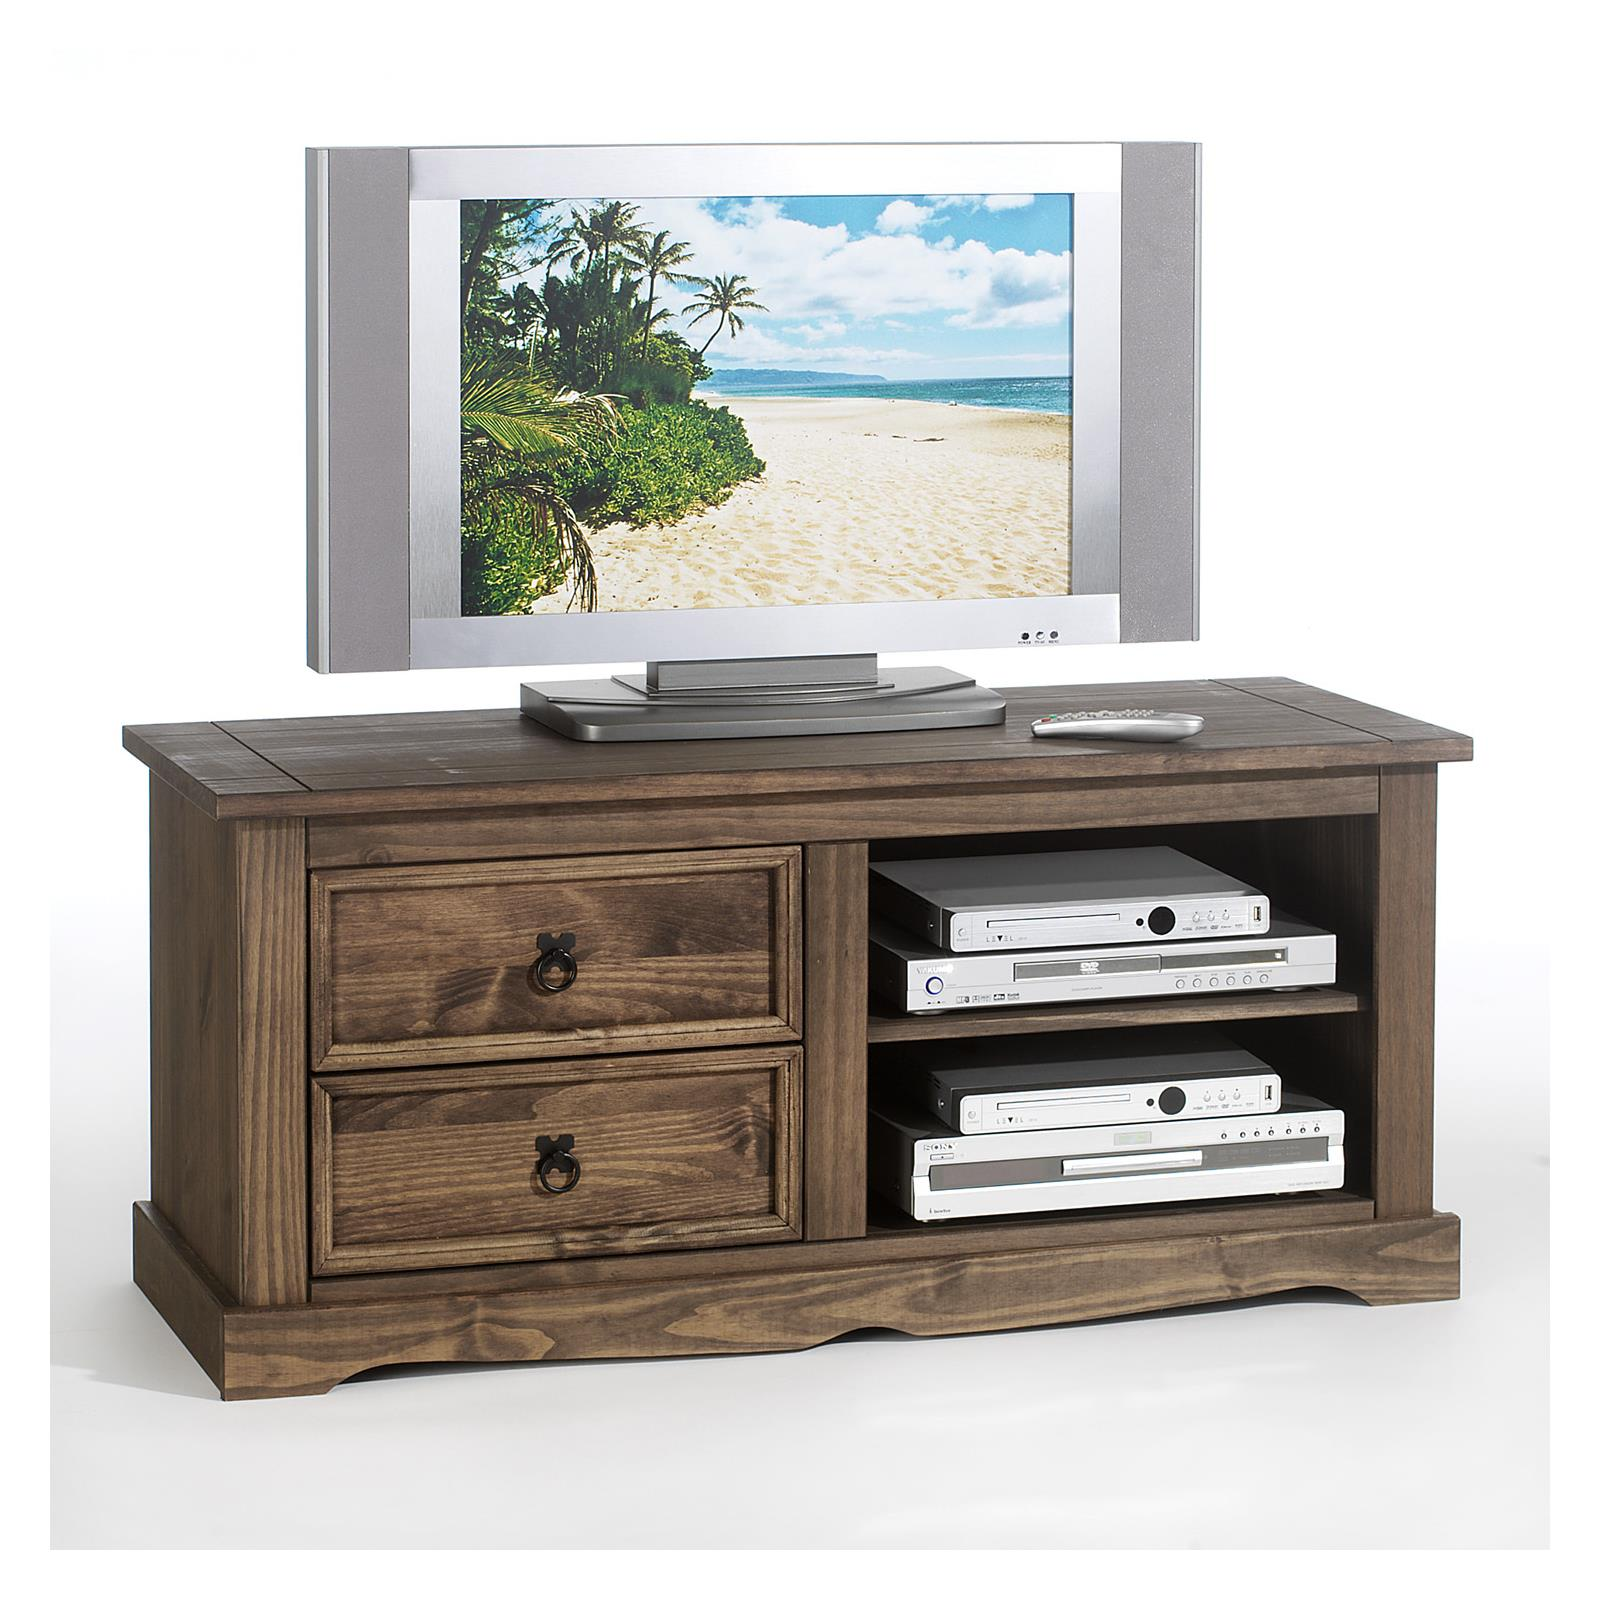 tv kommode mexico m bel dunkelbraun caro m bel. Black Bedroom Furniture Sets. Home Design Ideas